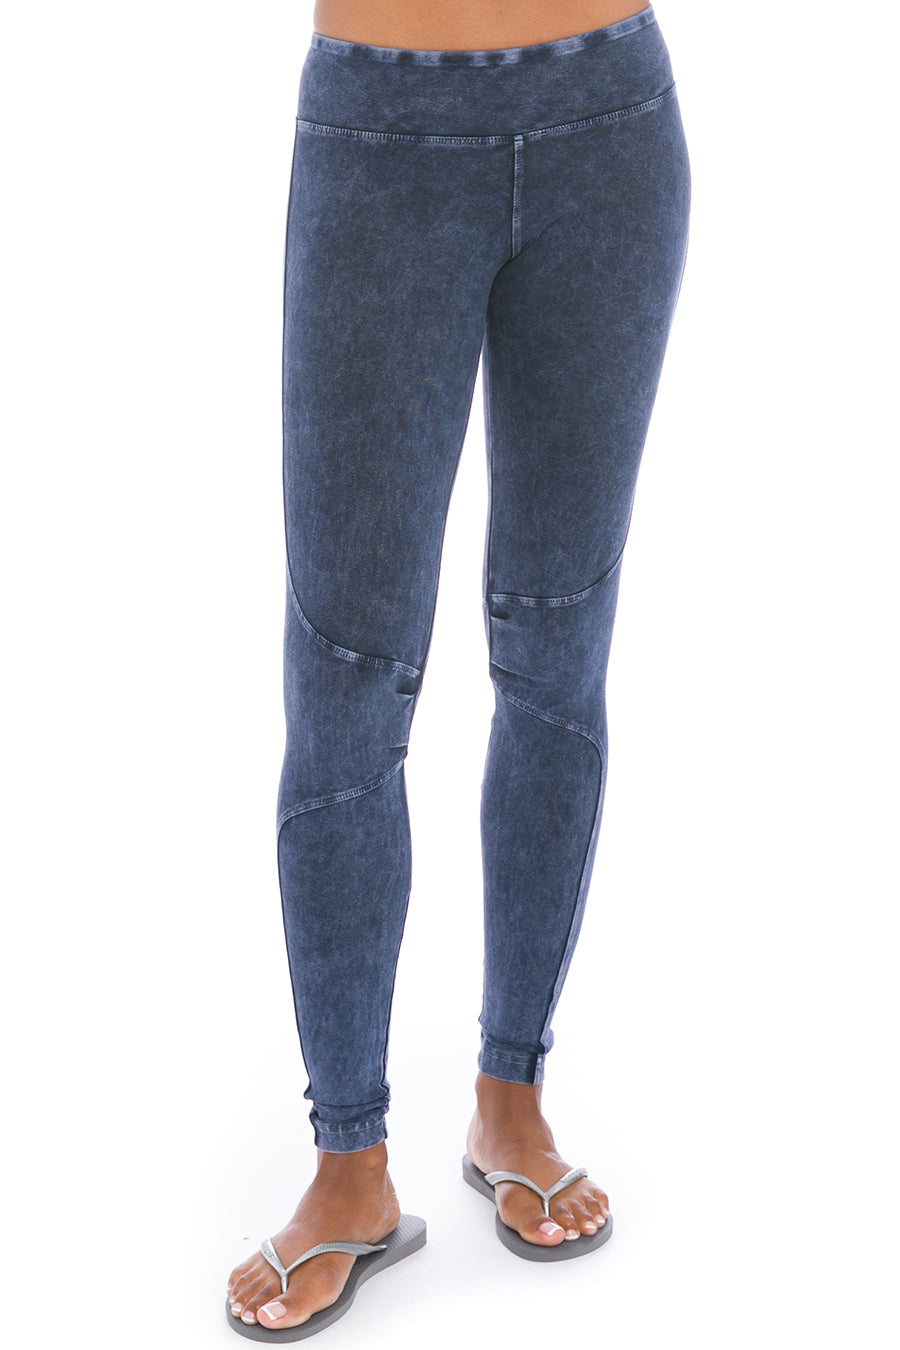 Hard Tail Forever Kick Out Ankle Legging - Mineral Wash 8 - S